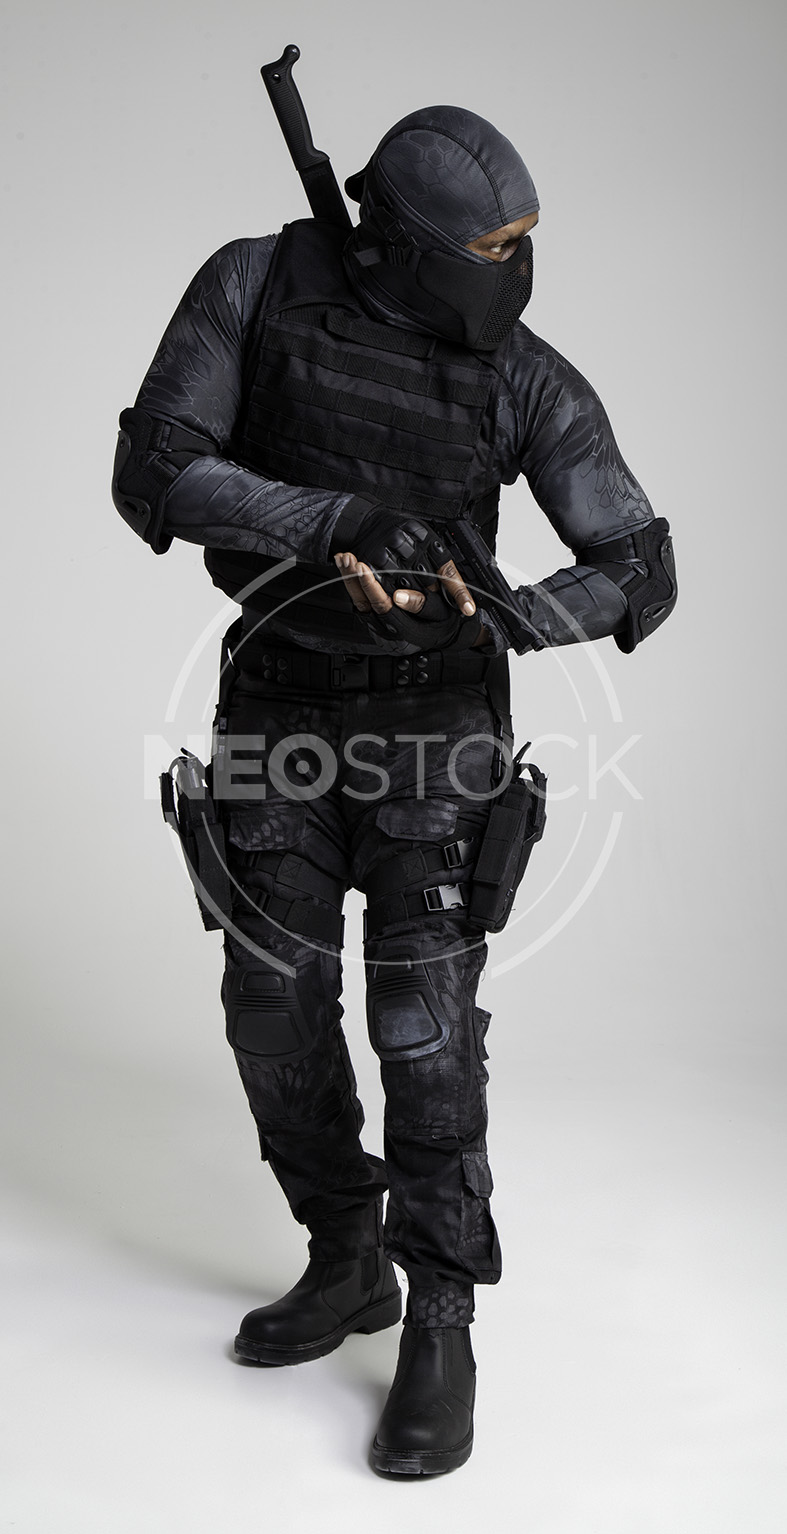 NeoStock -Regis VI, Tactical Assassin, Stock Photography